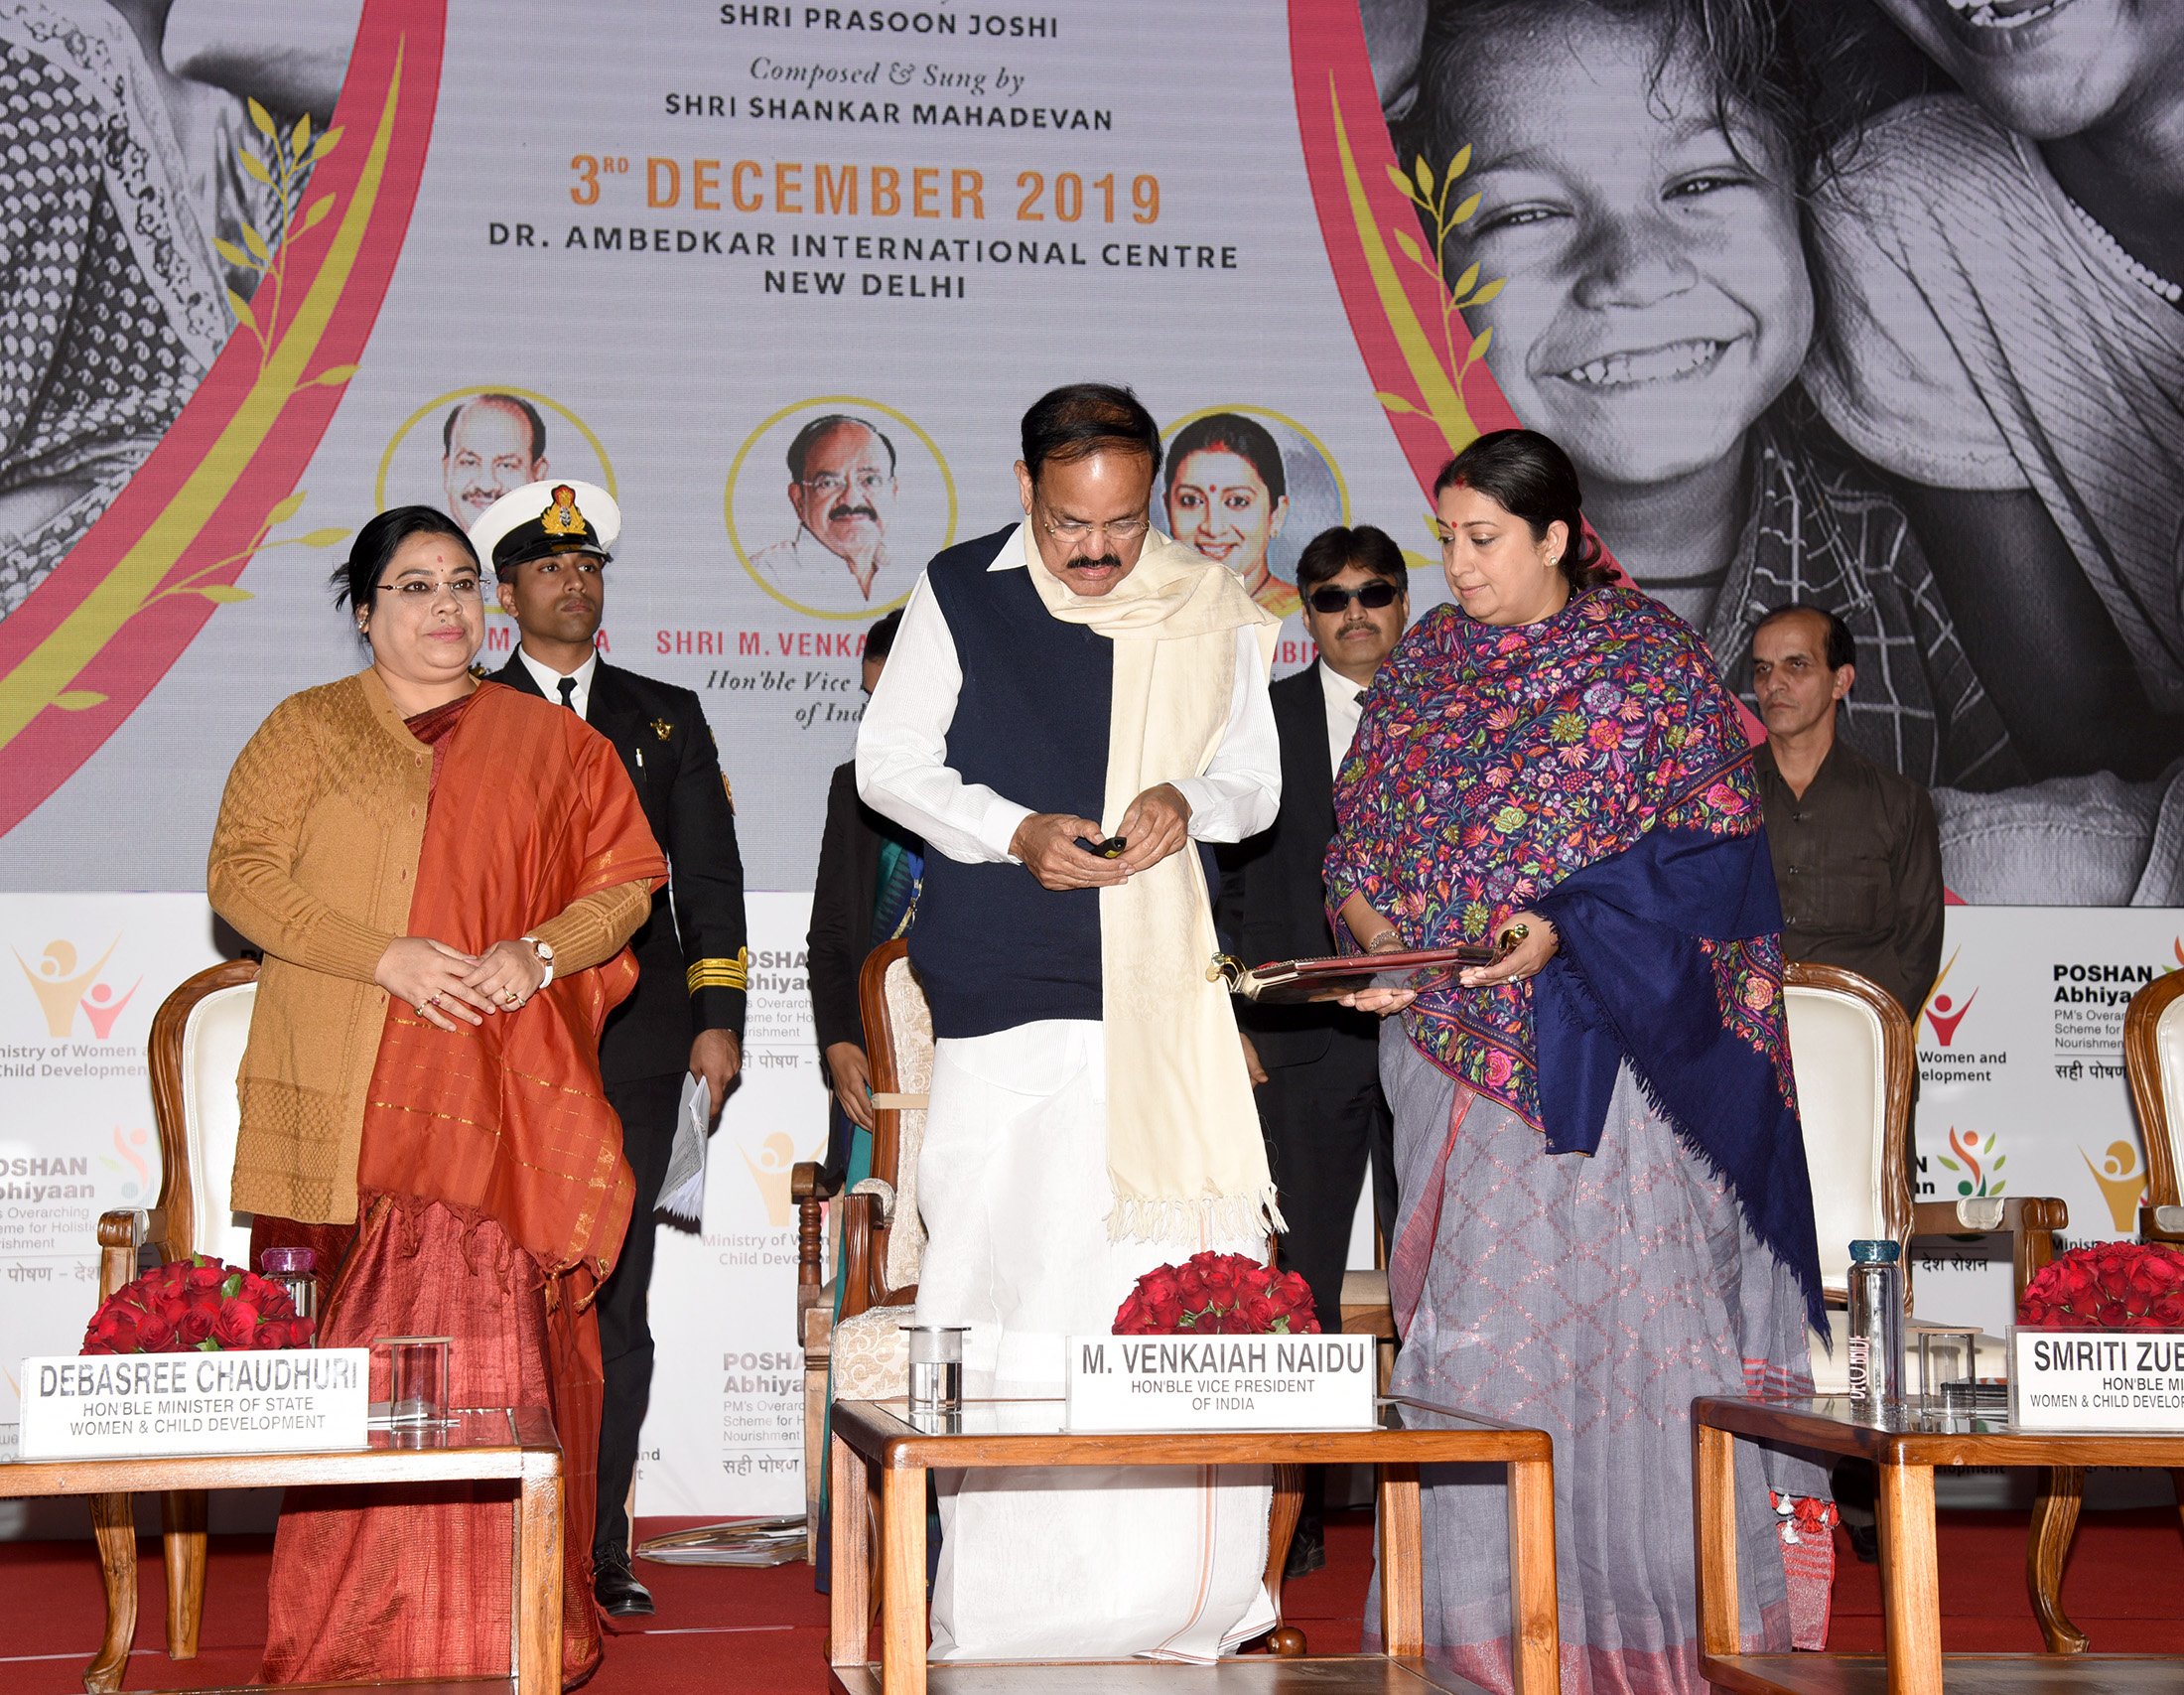 The Vice President, Shri M. Venkaiah Naidu launching the 'POSHAN Anthem' at an event organized by the Ministry of Women and Child Development, in New Delhi on 03 December, 2019.